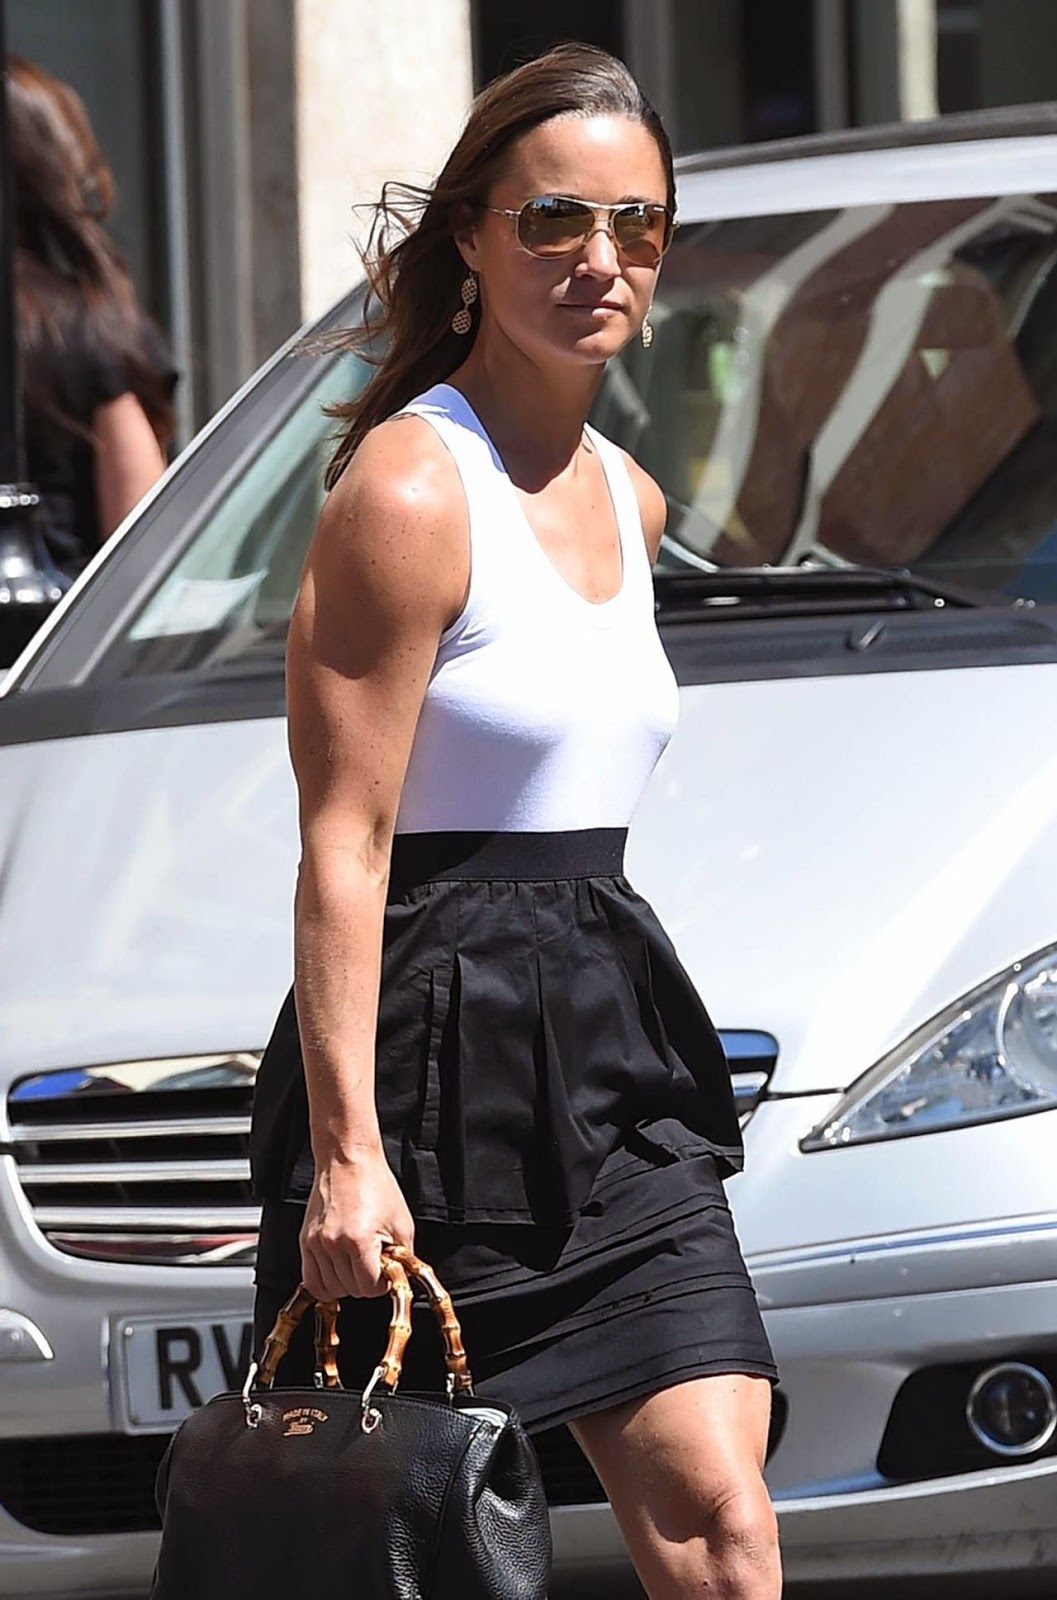 Pippa Middleton steps out in ruffled skirt and sleeveless top in Chelsea